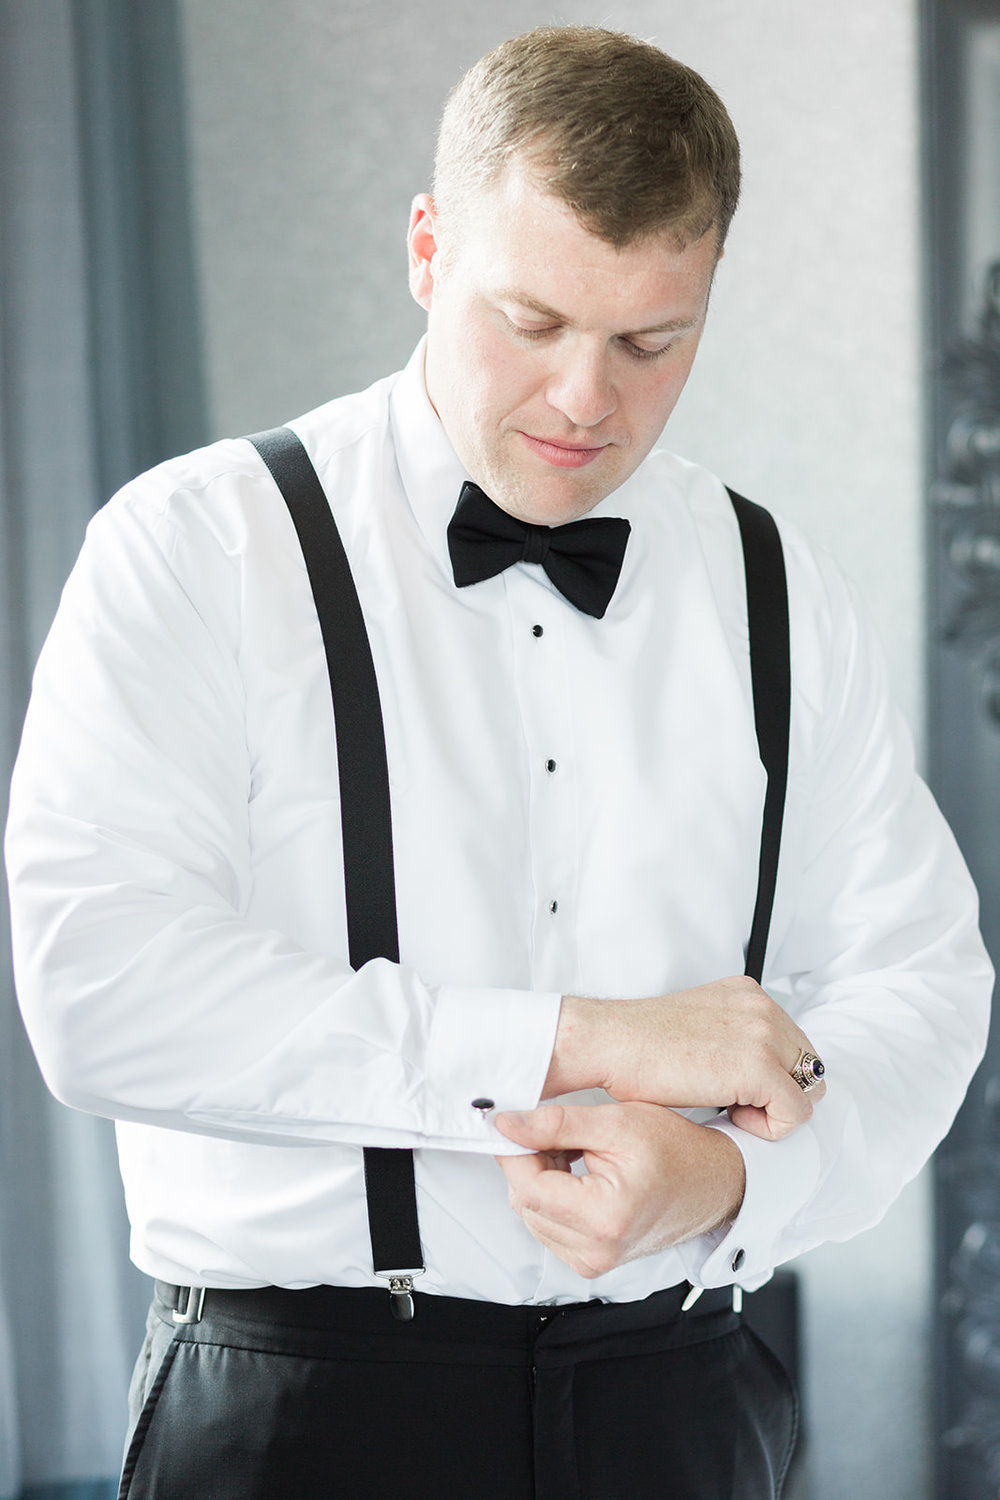 Groom getting ready in black tuxedo and bow tie for Pittsburgh wedding at PNC Park planned by Exhale Events. Find more wedding inspiration at exhale-events.com!